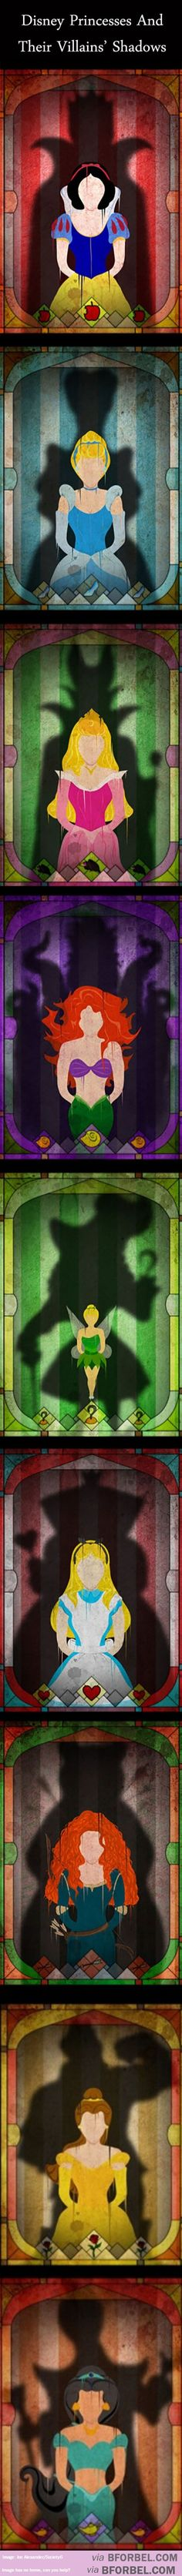 9 Disney Princesses Haunted By The Shadows Of Their Villains…